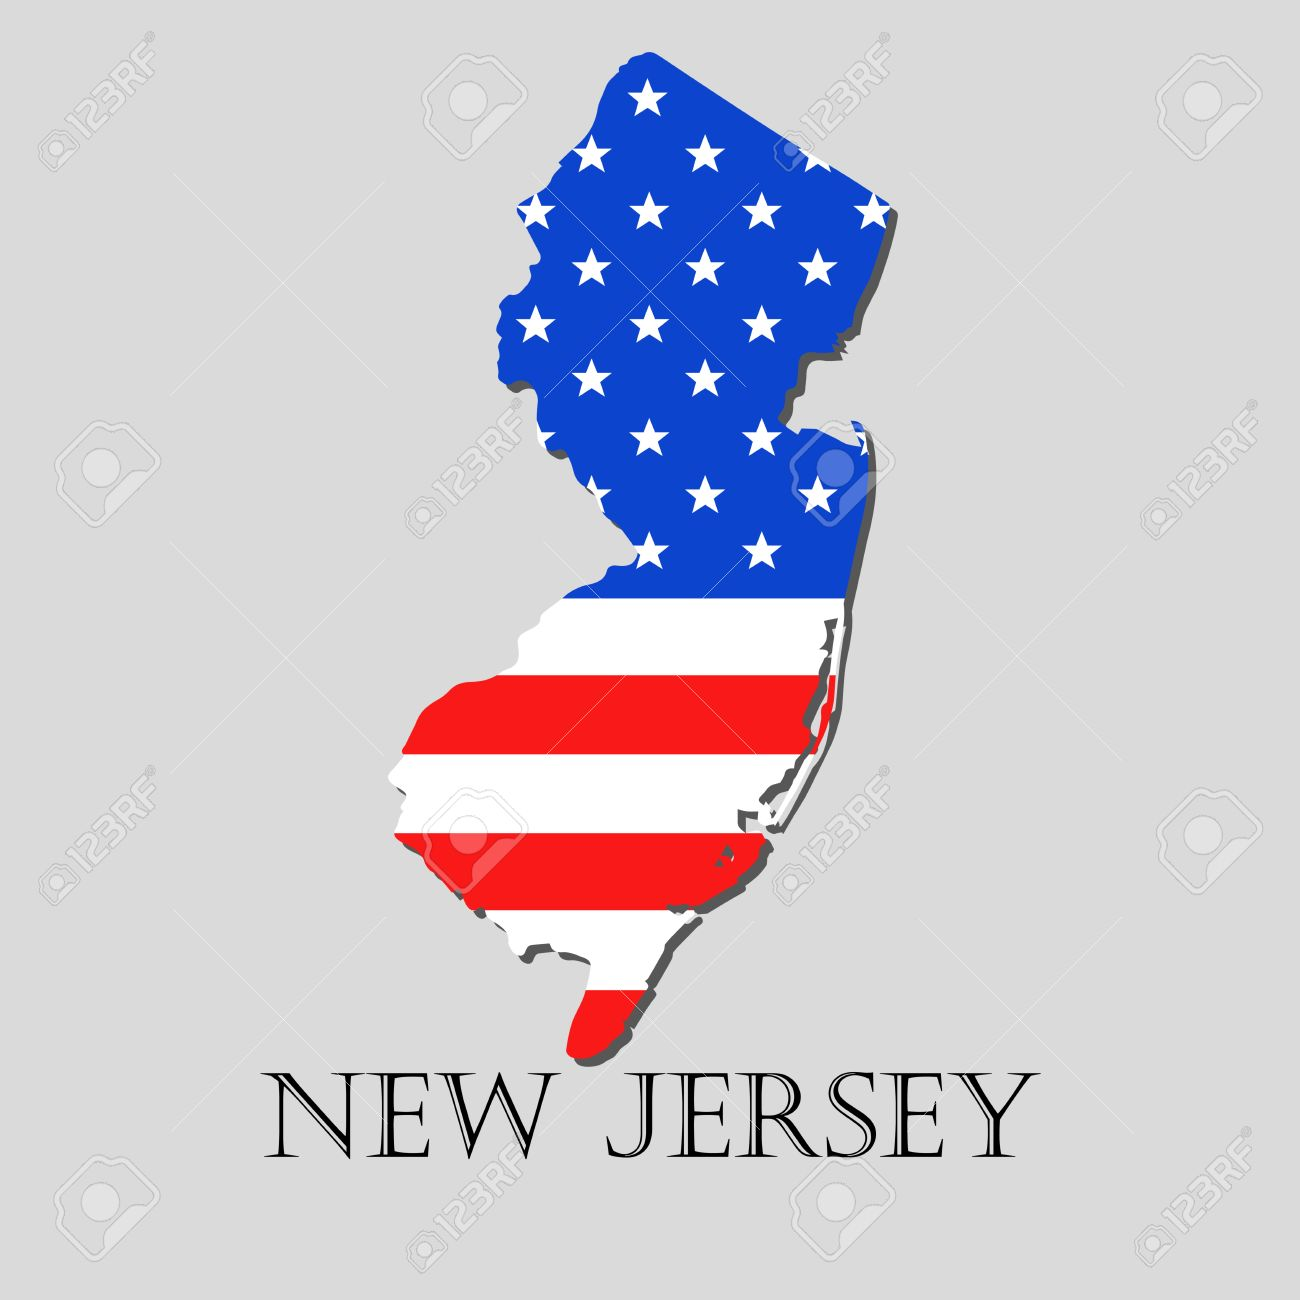 Map Of The State Of New Jersey And American Flag Illustration - Map of the state of new jersey